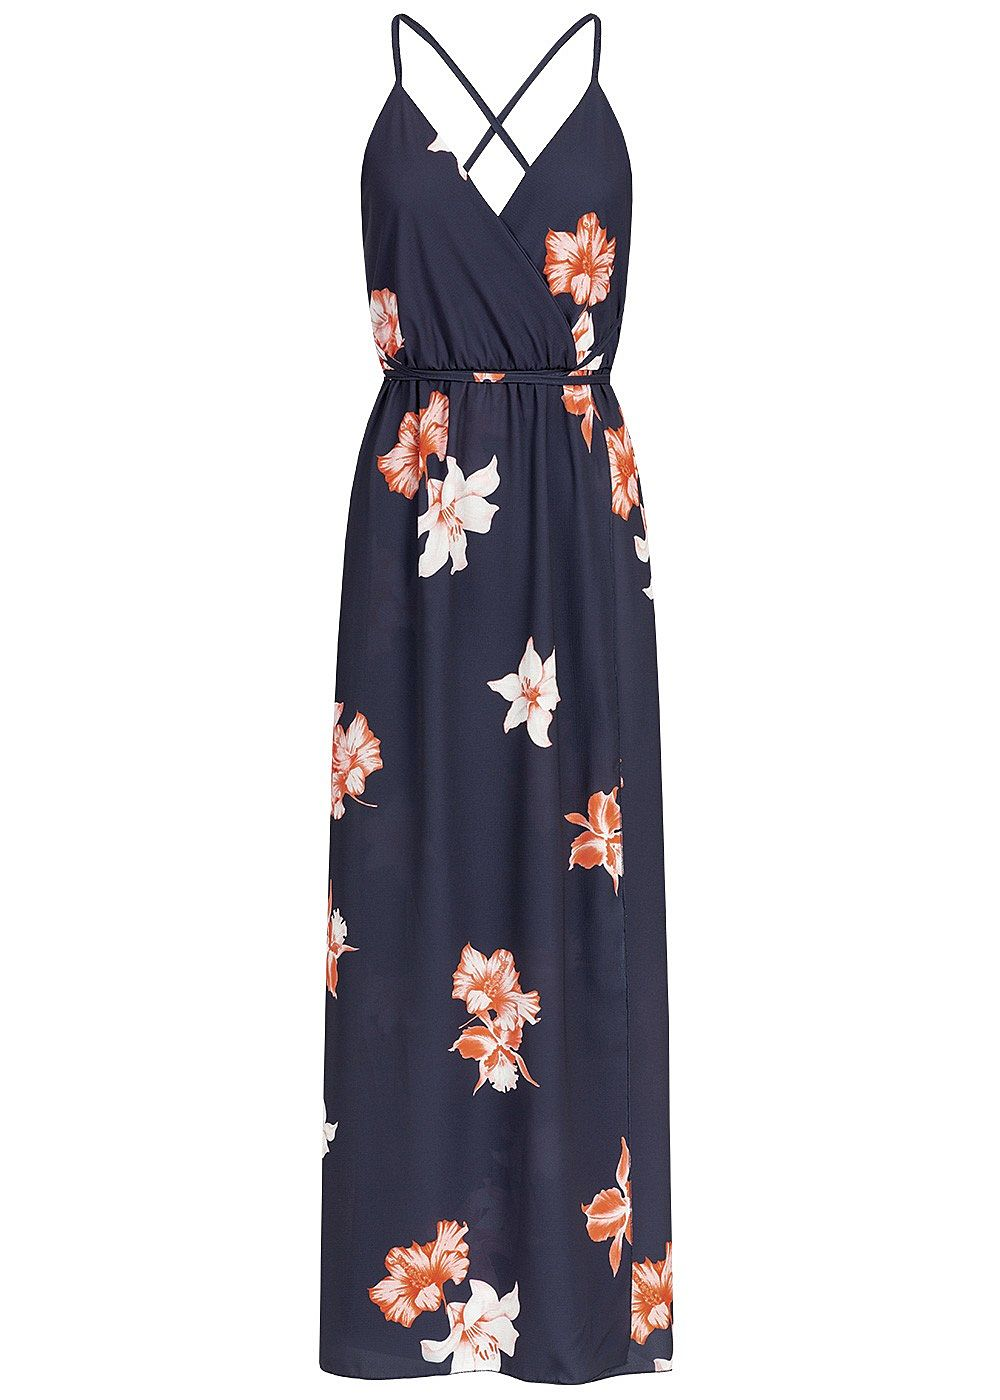 Styleboom Fashion Damen Wrapped Maxi Dress Cross Back Side Flower Print navy blau - Art.-Nr.: 19036272